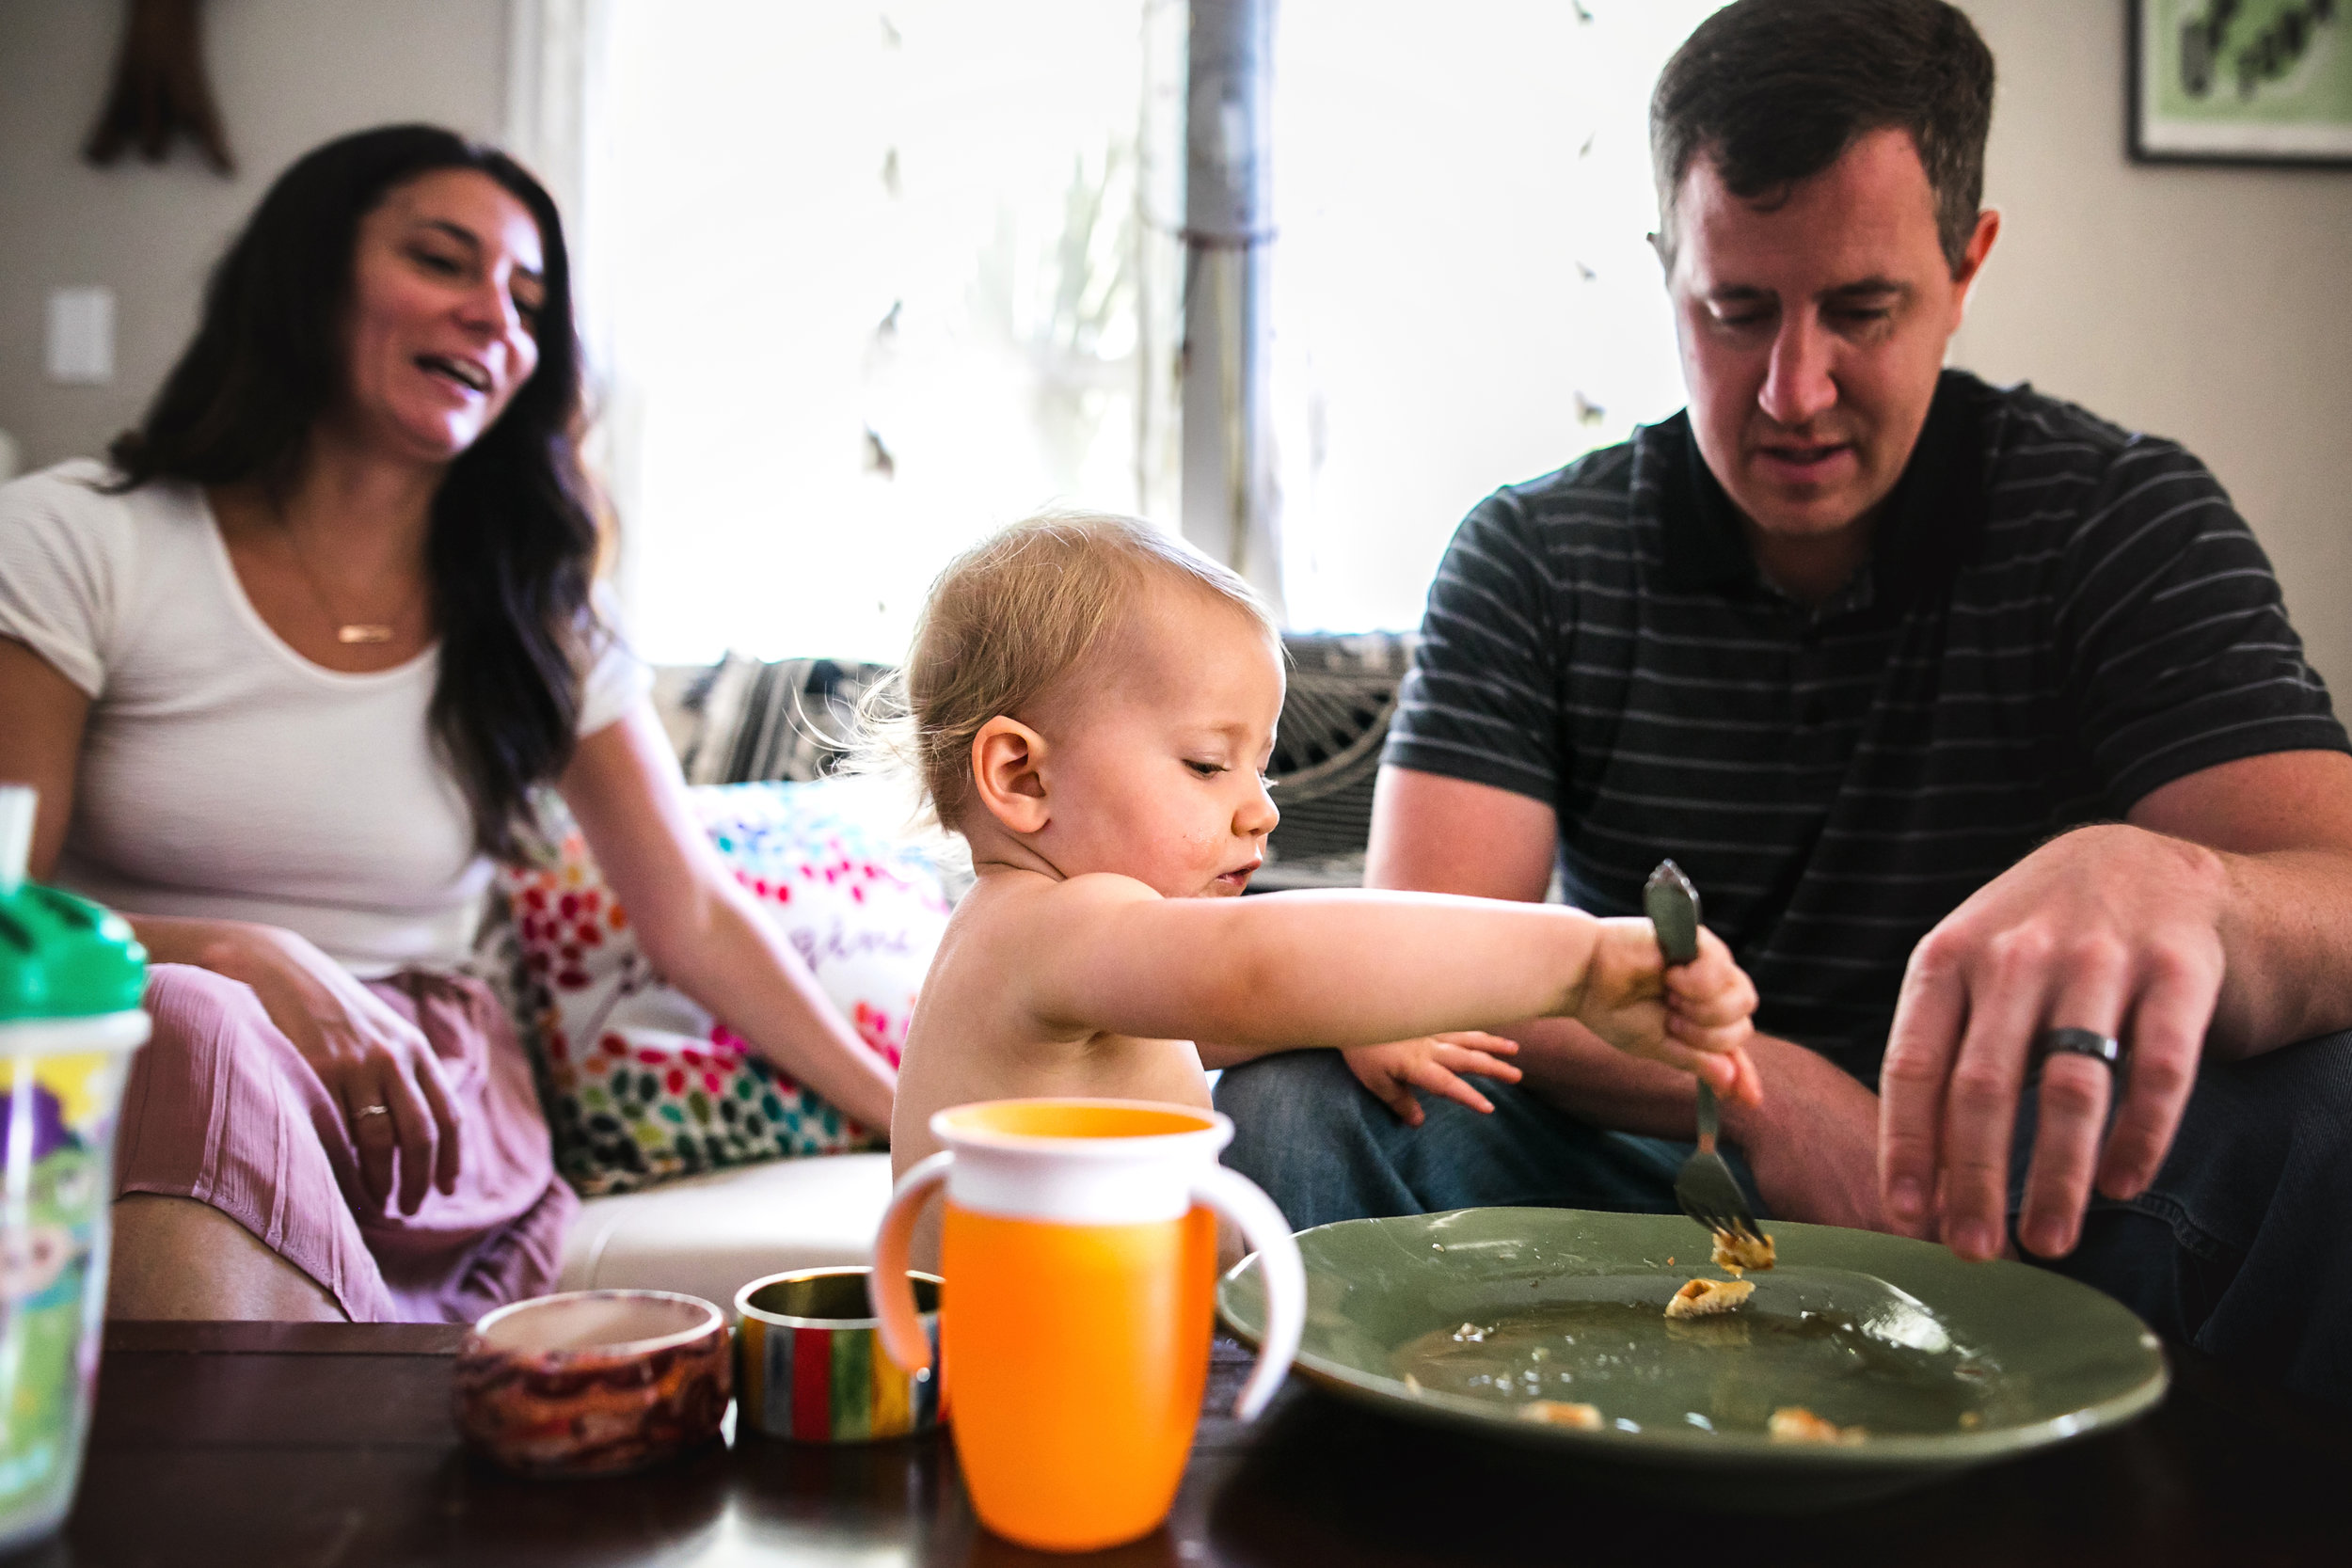 baby learns to use a fork while eating waffles-(ZF-0126-04493-1-029).jpg